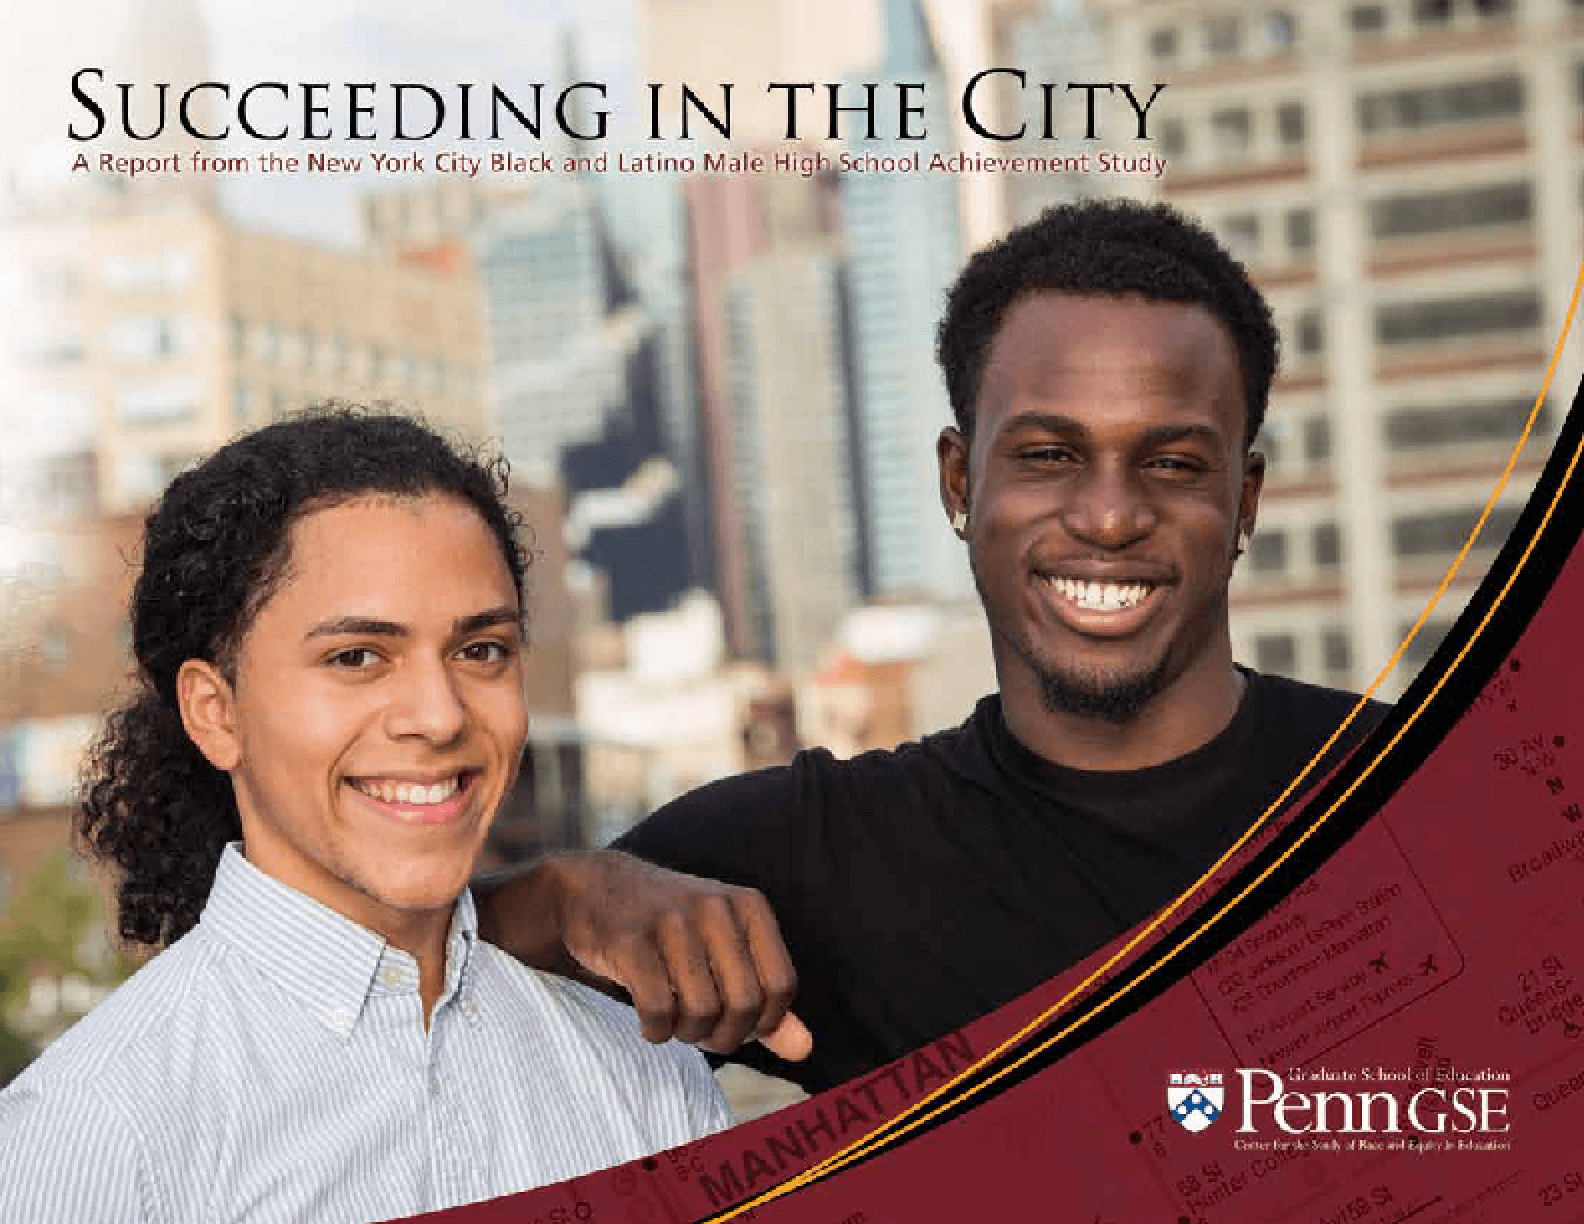 Succeeding in the City: A Report from the New York City Black and Latino Male High School Achievement Study